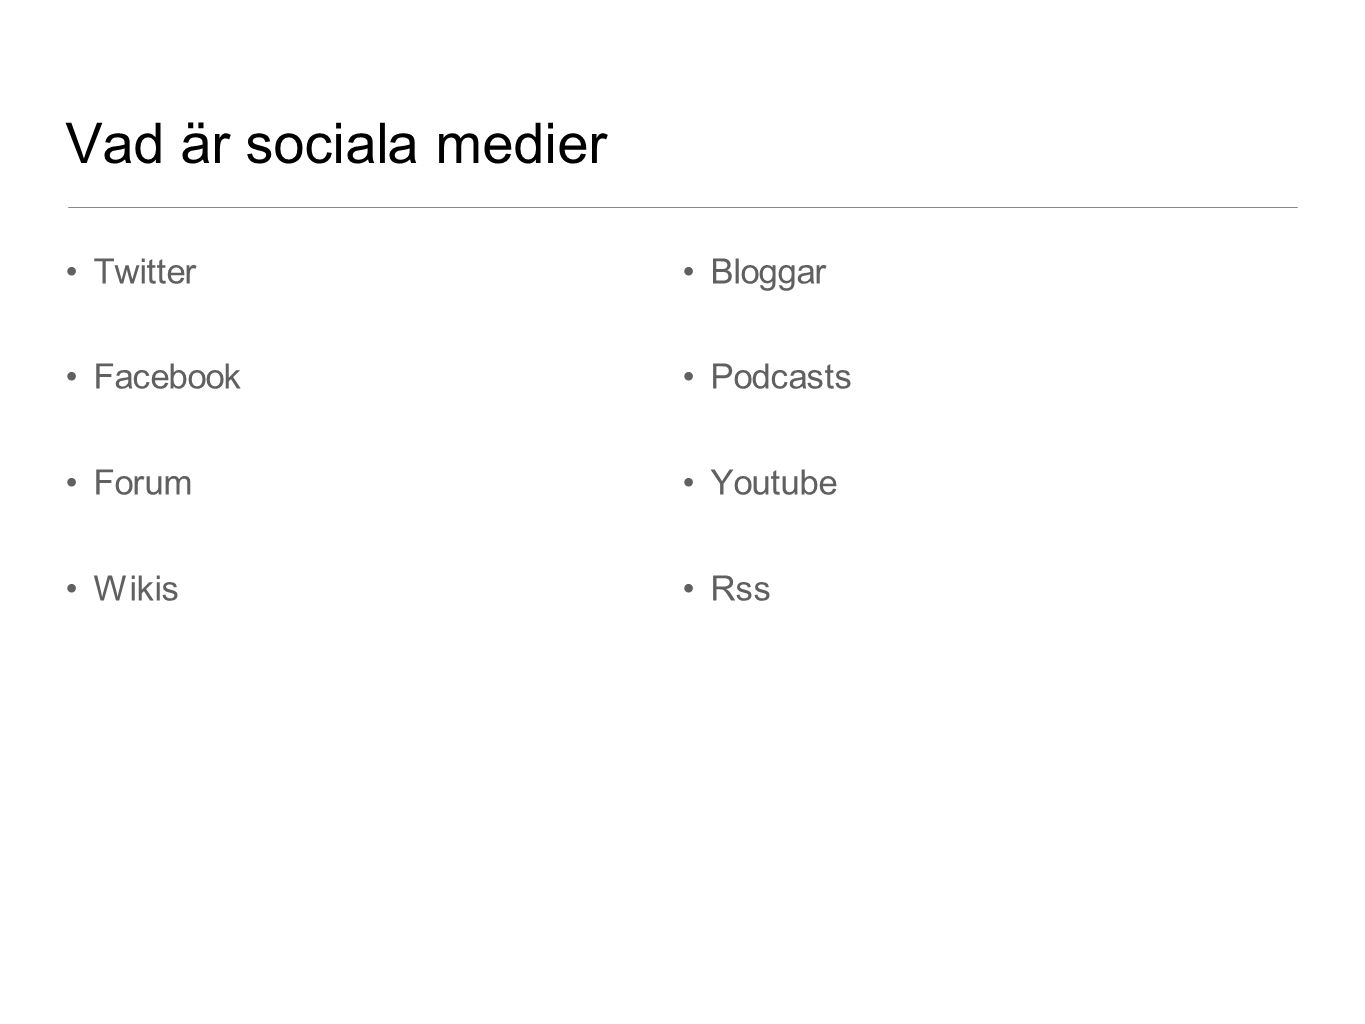 Vad är sociala medier Twitter Facebook Forum Wikis Bloggar Podcasts Youtube Rss